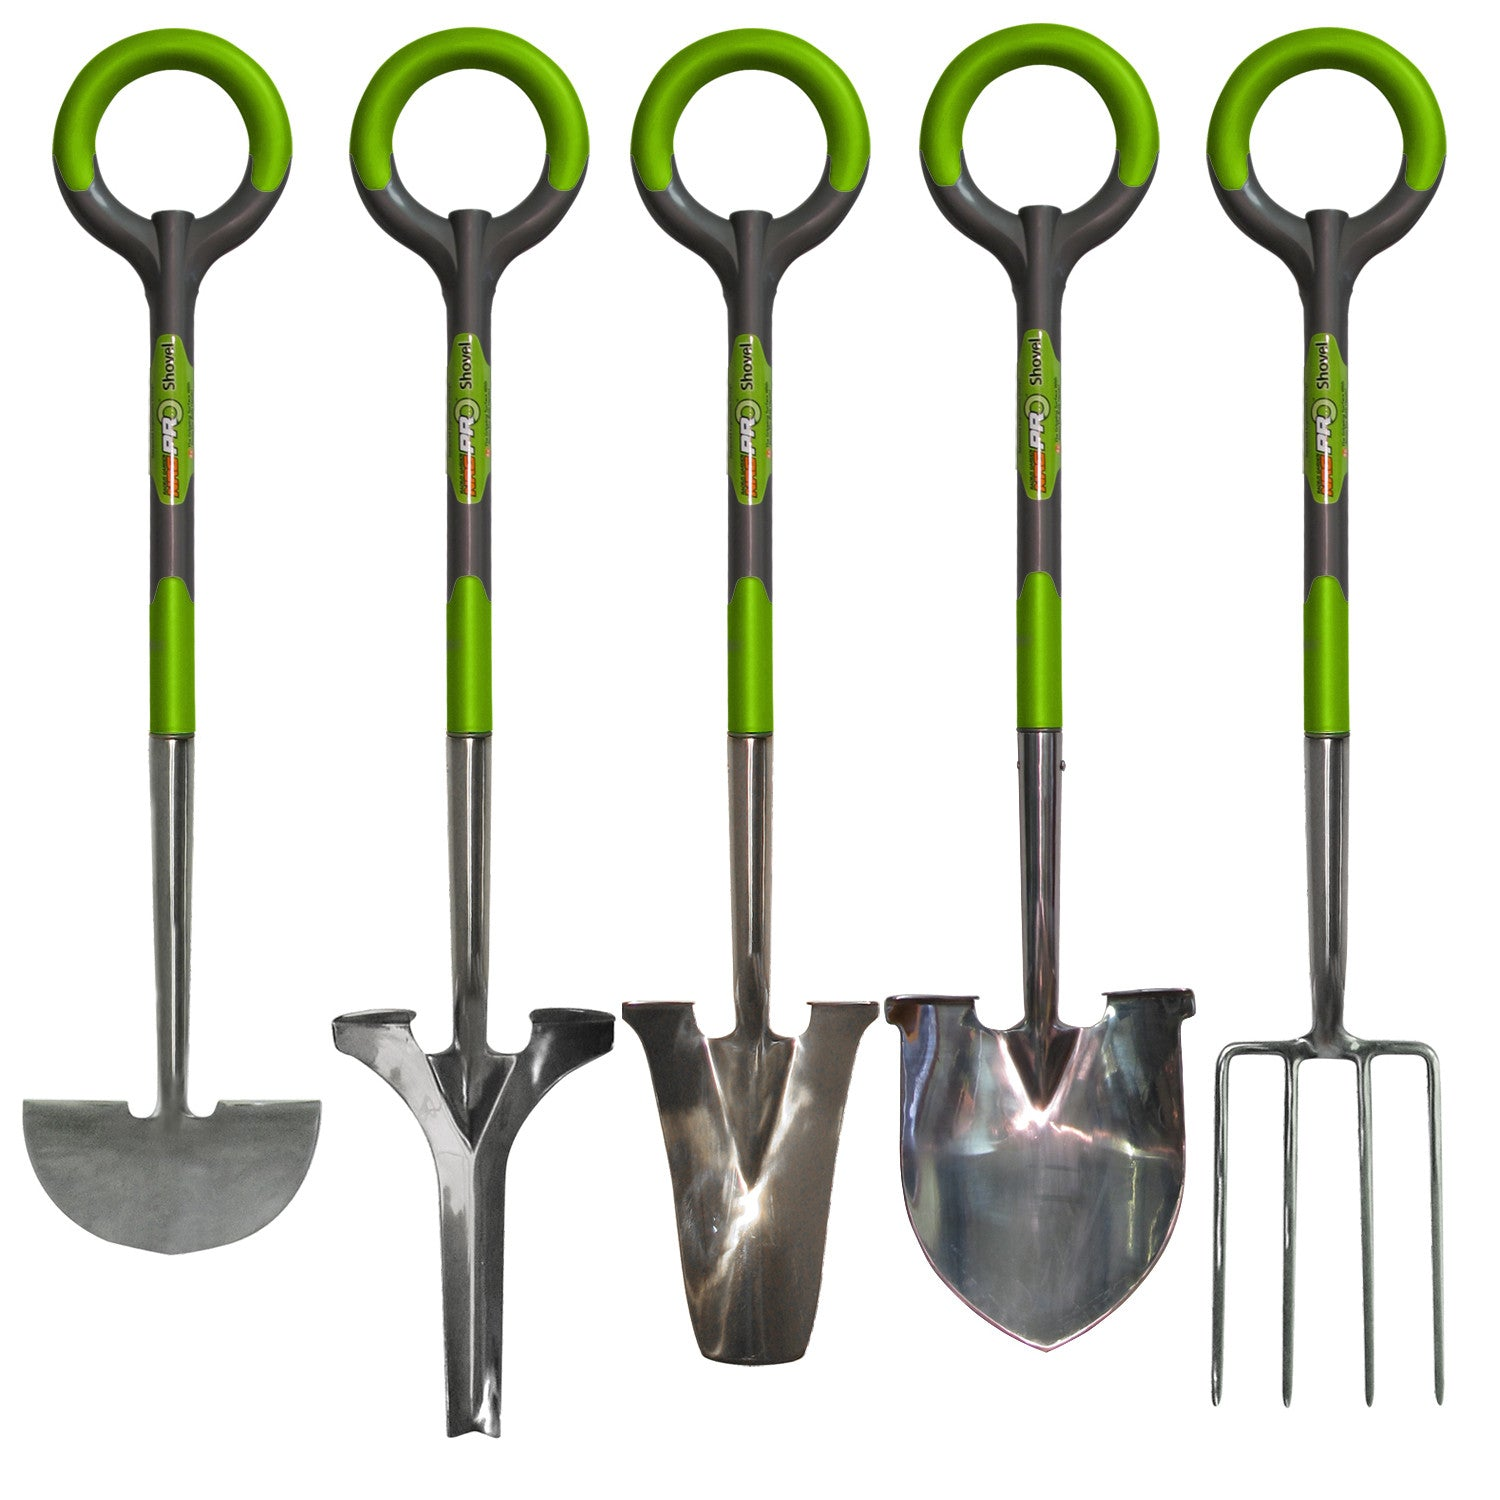 Radius garden for Professional gardening tools